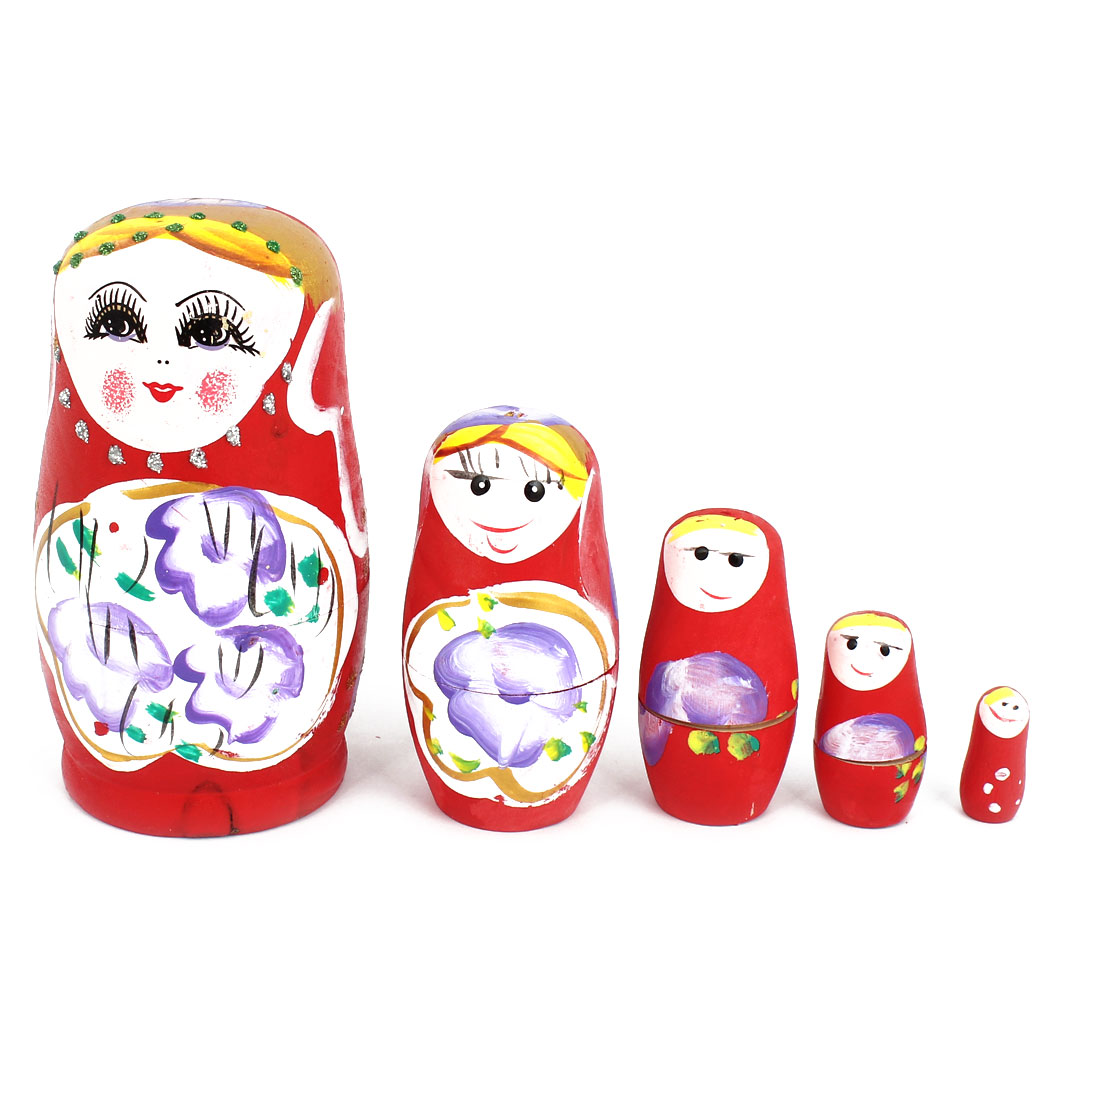 Unique Bargains Red Wooden Russian Girl Painting Nesting Doll Matryoshka Decor Set 5 in 1